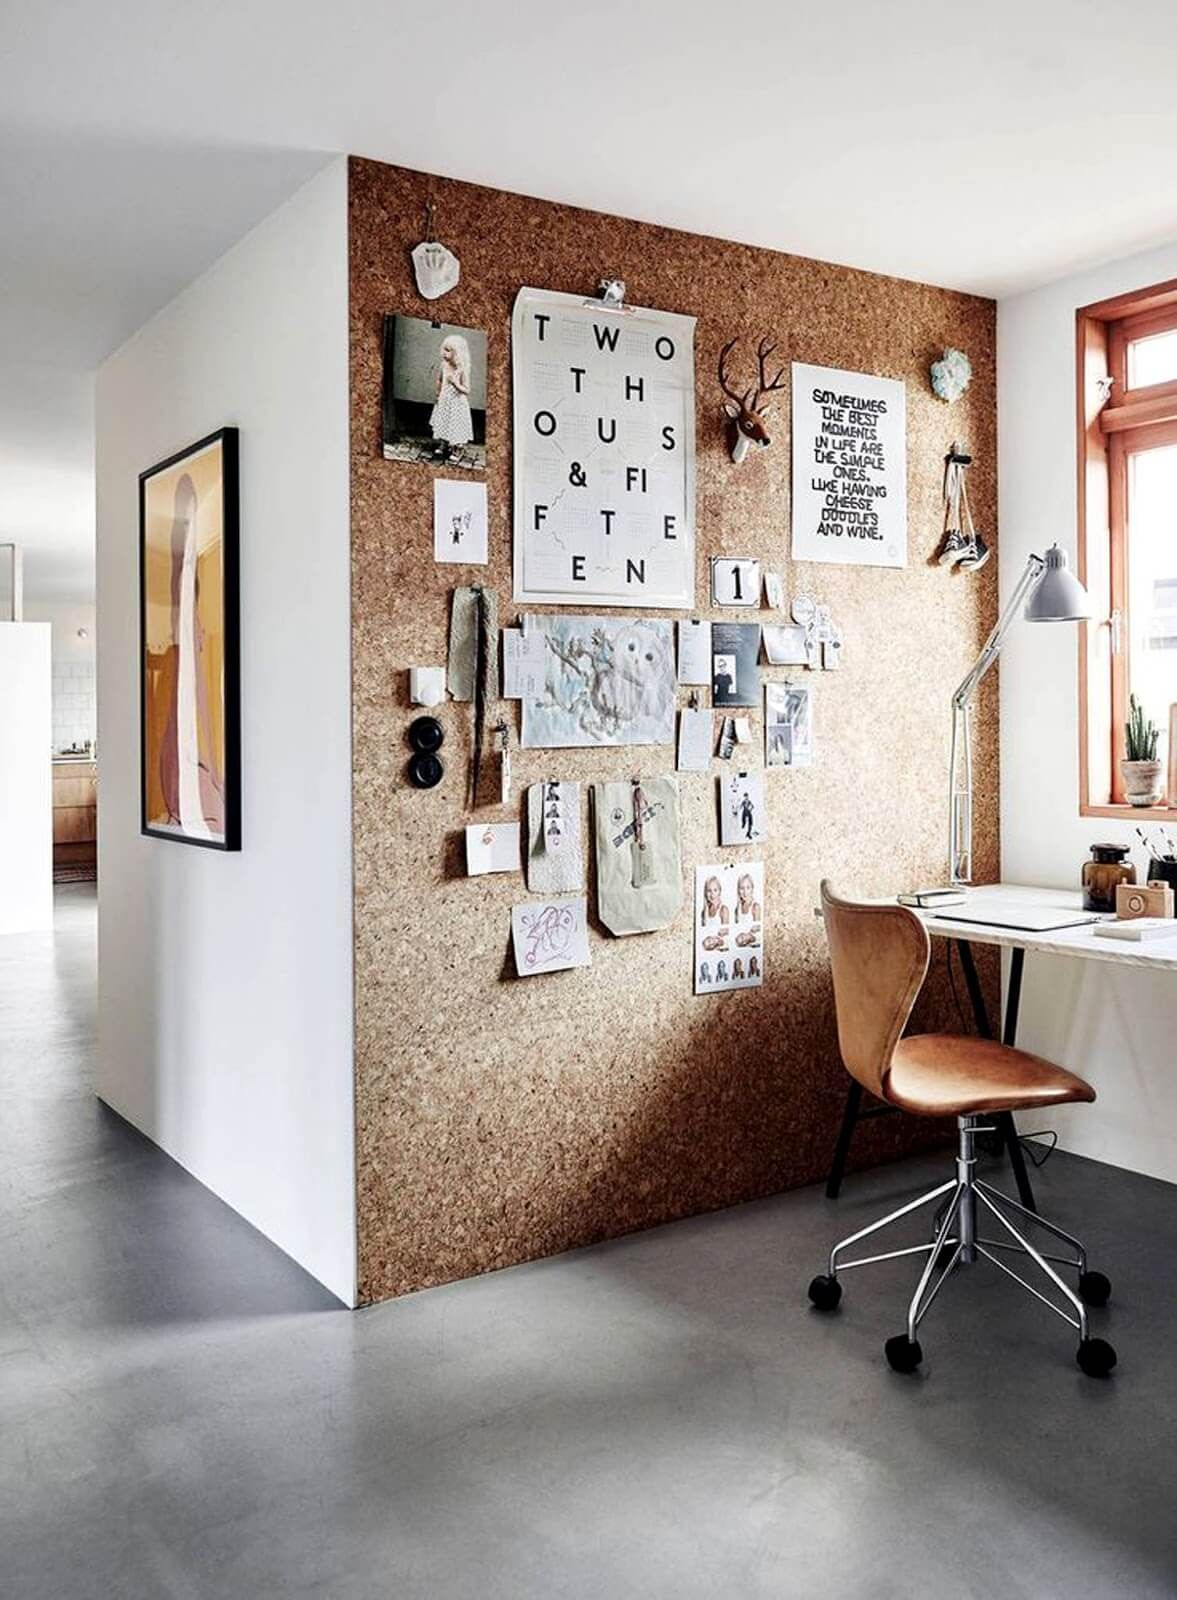 PIN ➕ INSTA: @sophiekateloves ✔️ 2017 trends: You heard it here first – cork is making a comeback. Not only is cork a stylish material idea that adds warmth and texture to spaces, it's also ideal for absorbing noise in our increasingly large, open plan homes.